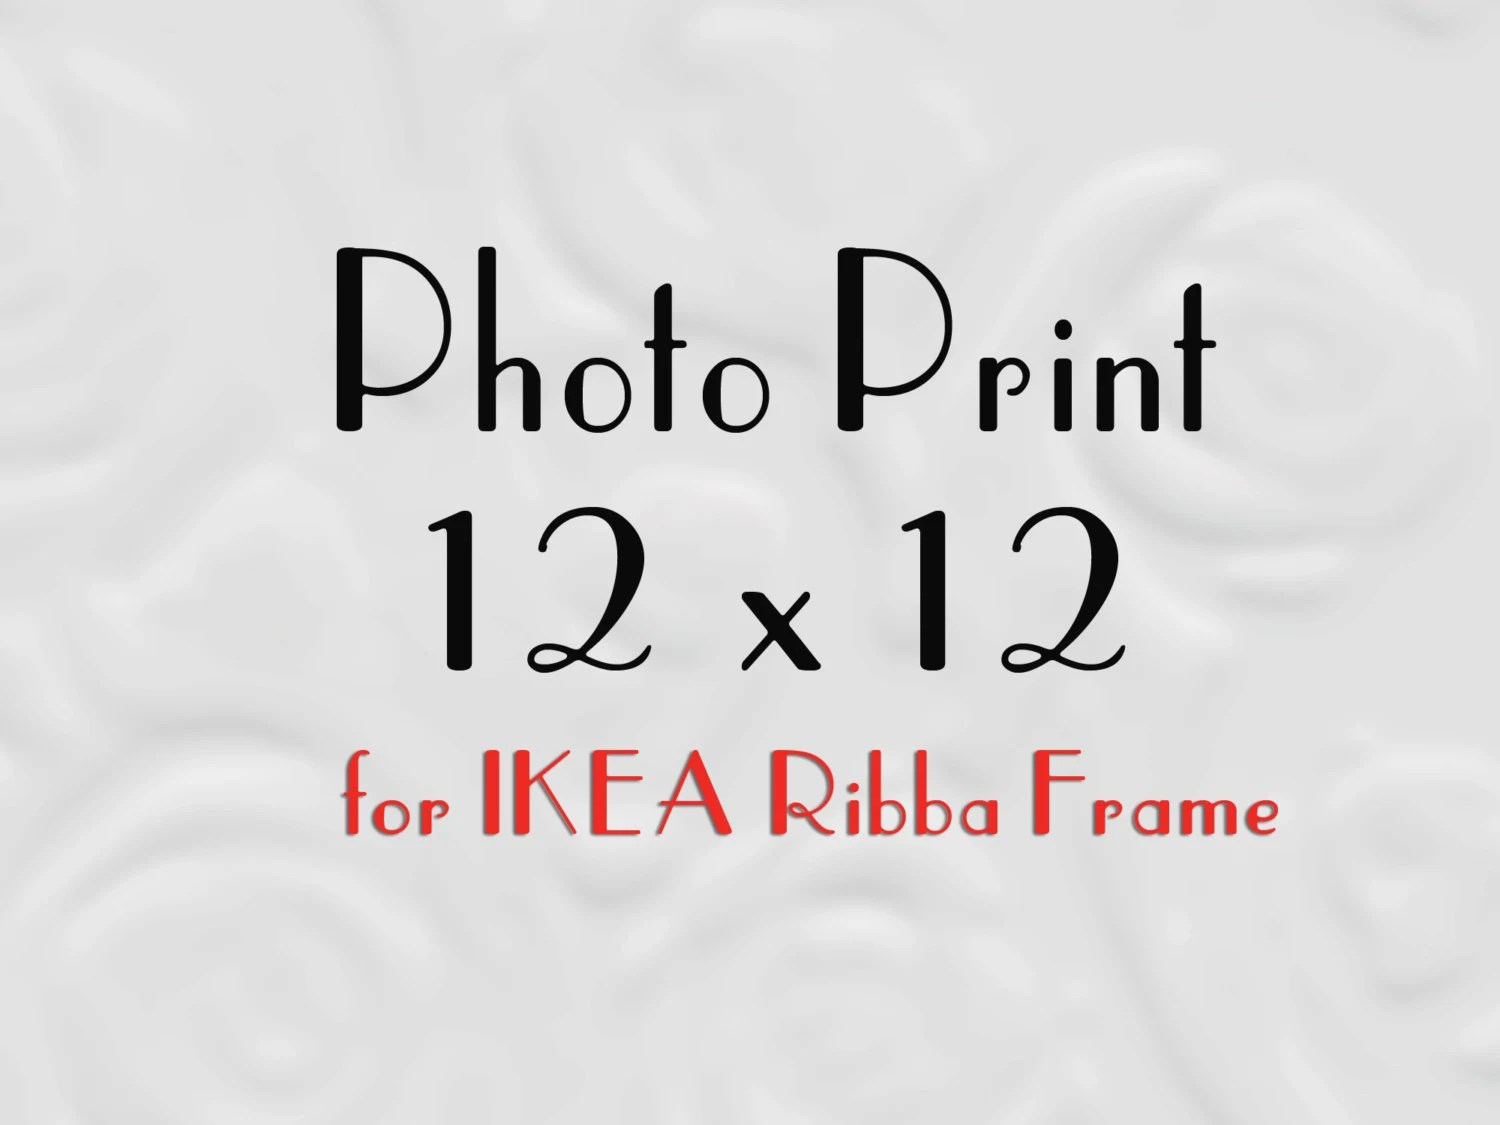 12x12 Poster 12x12 Prints For Ikea Ribba 12x12 Prints 12x12 Photos To